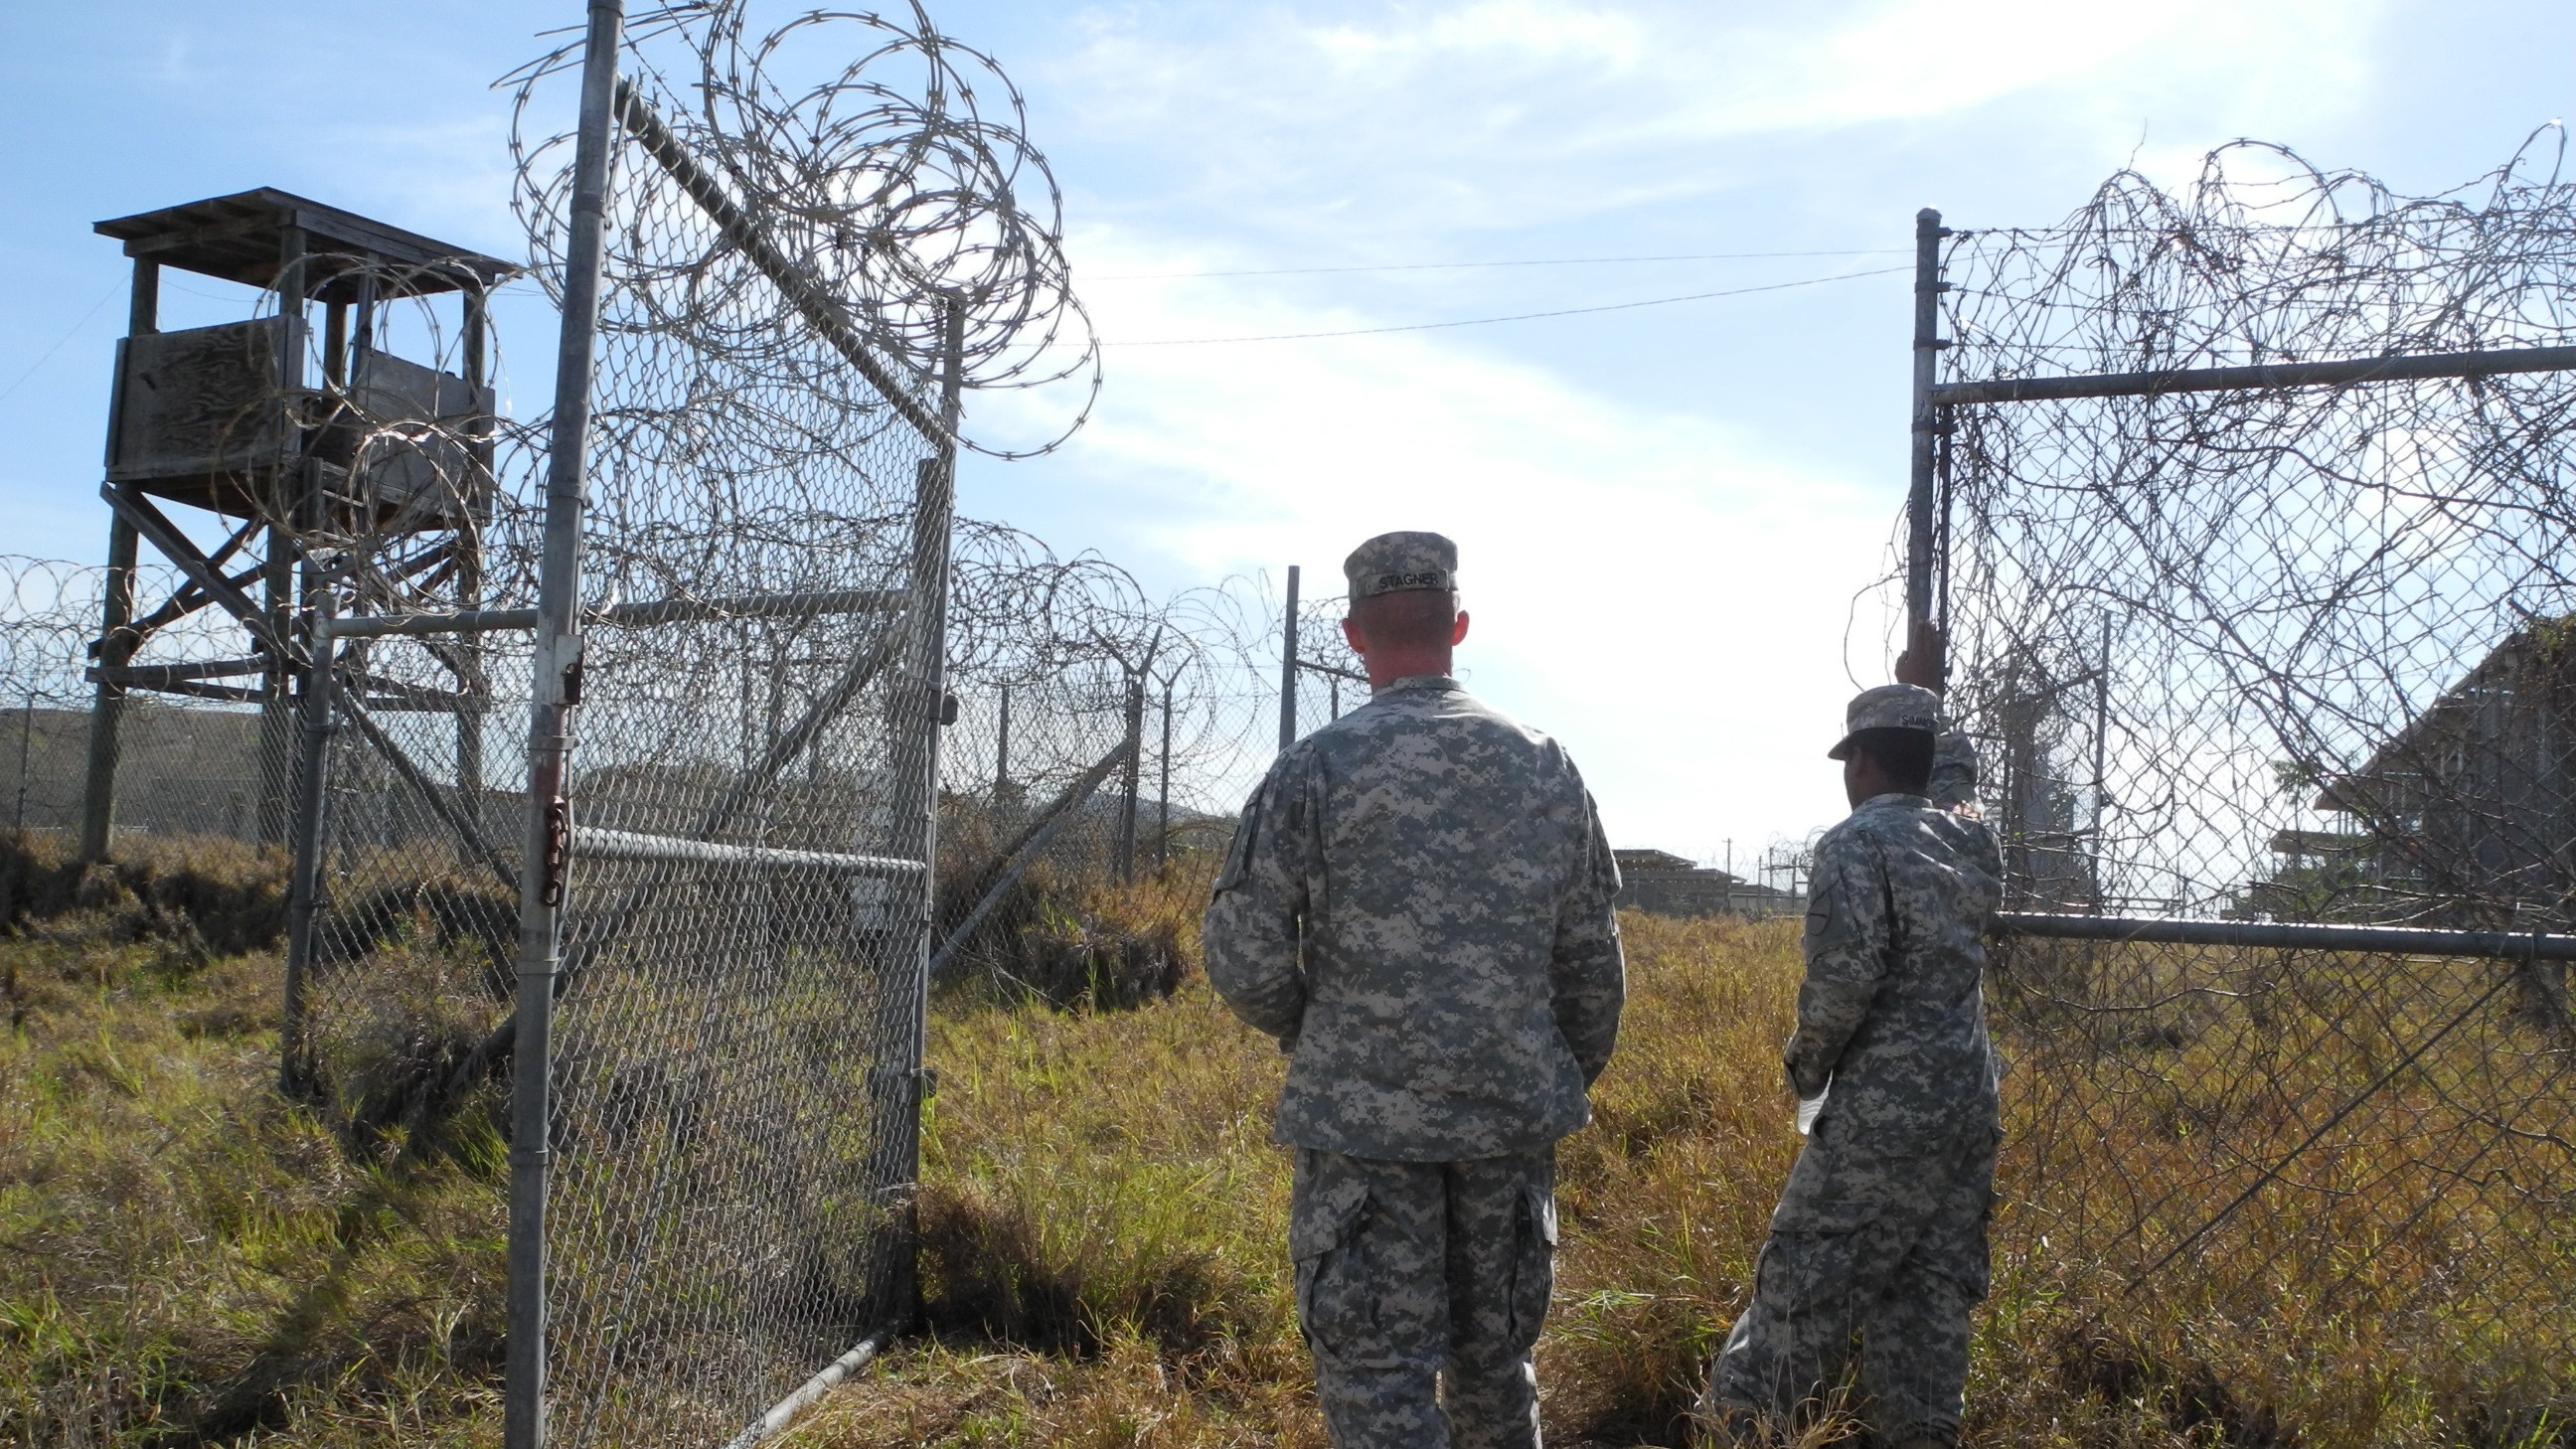 The Defense Bill That Obama Just Signed Will Make It Harder to Shut Guantanamo